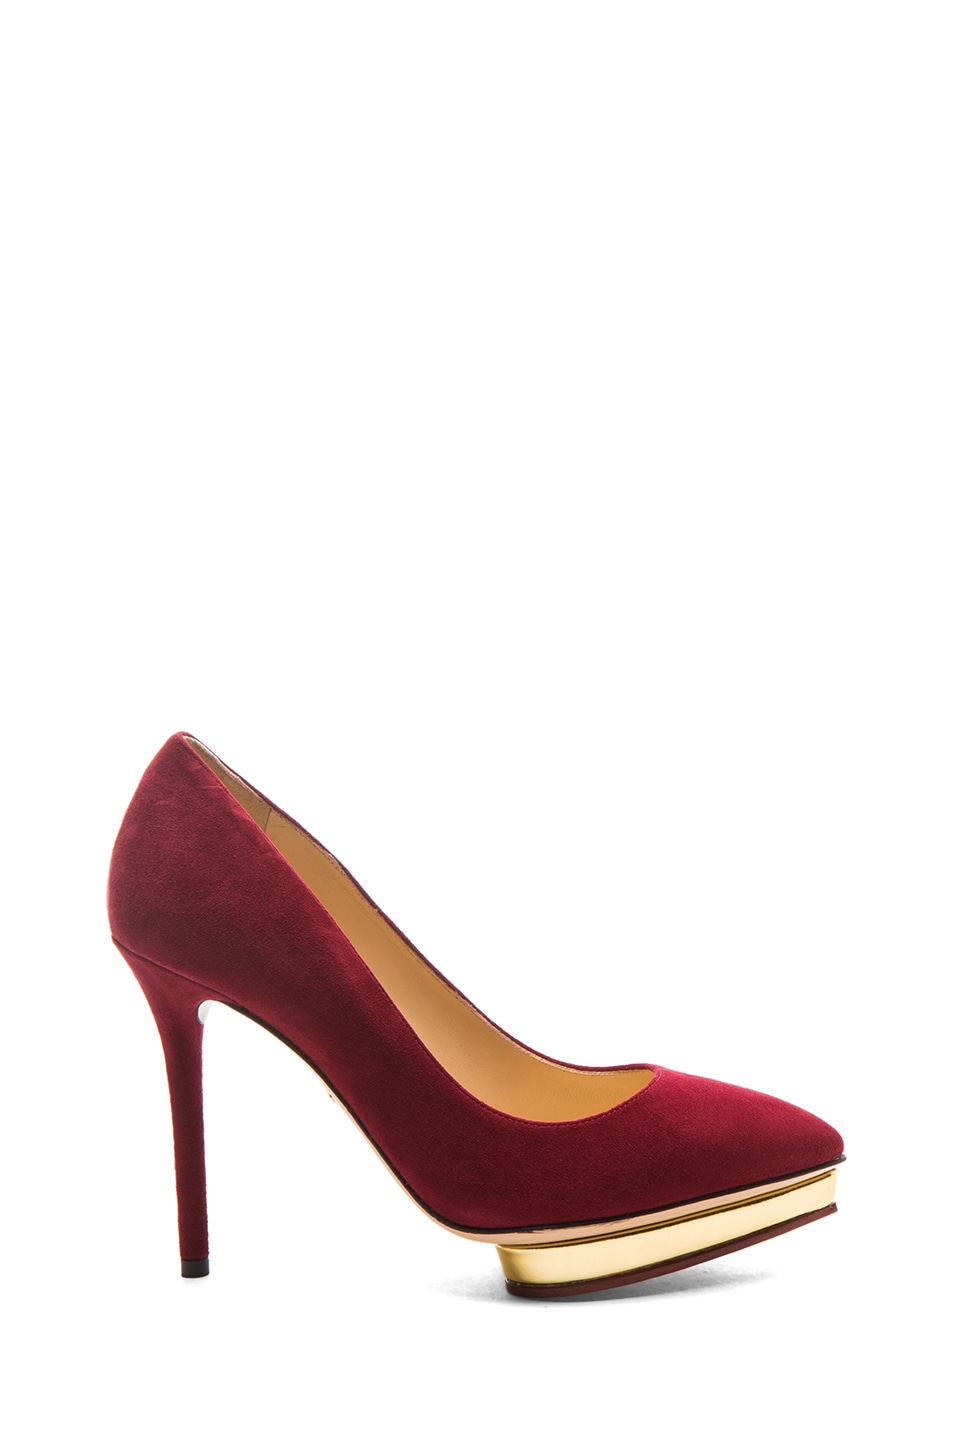 Image 1 of Charlotte Olympia Debbie Suede Pumps in Burgundy